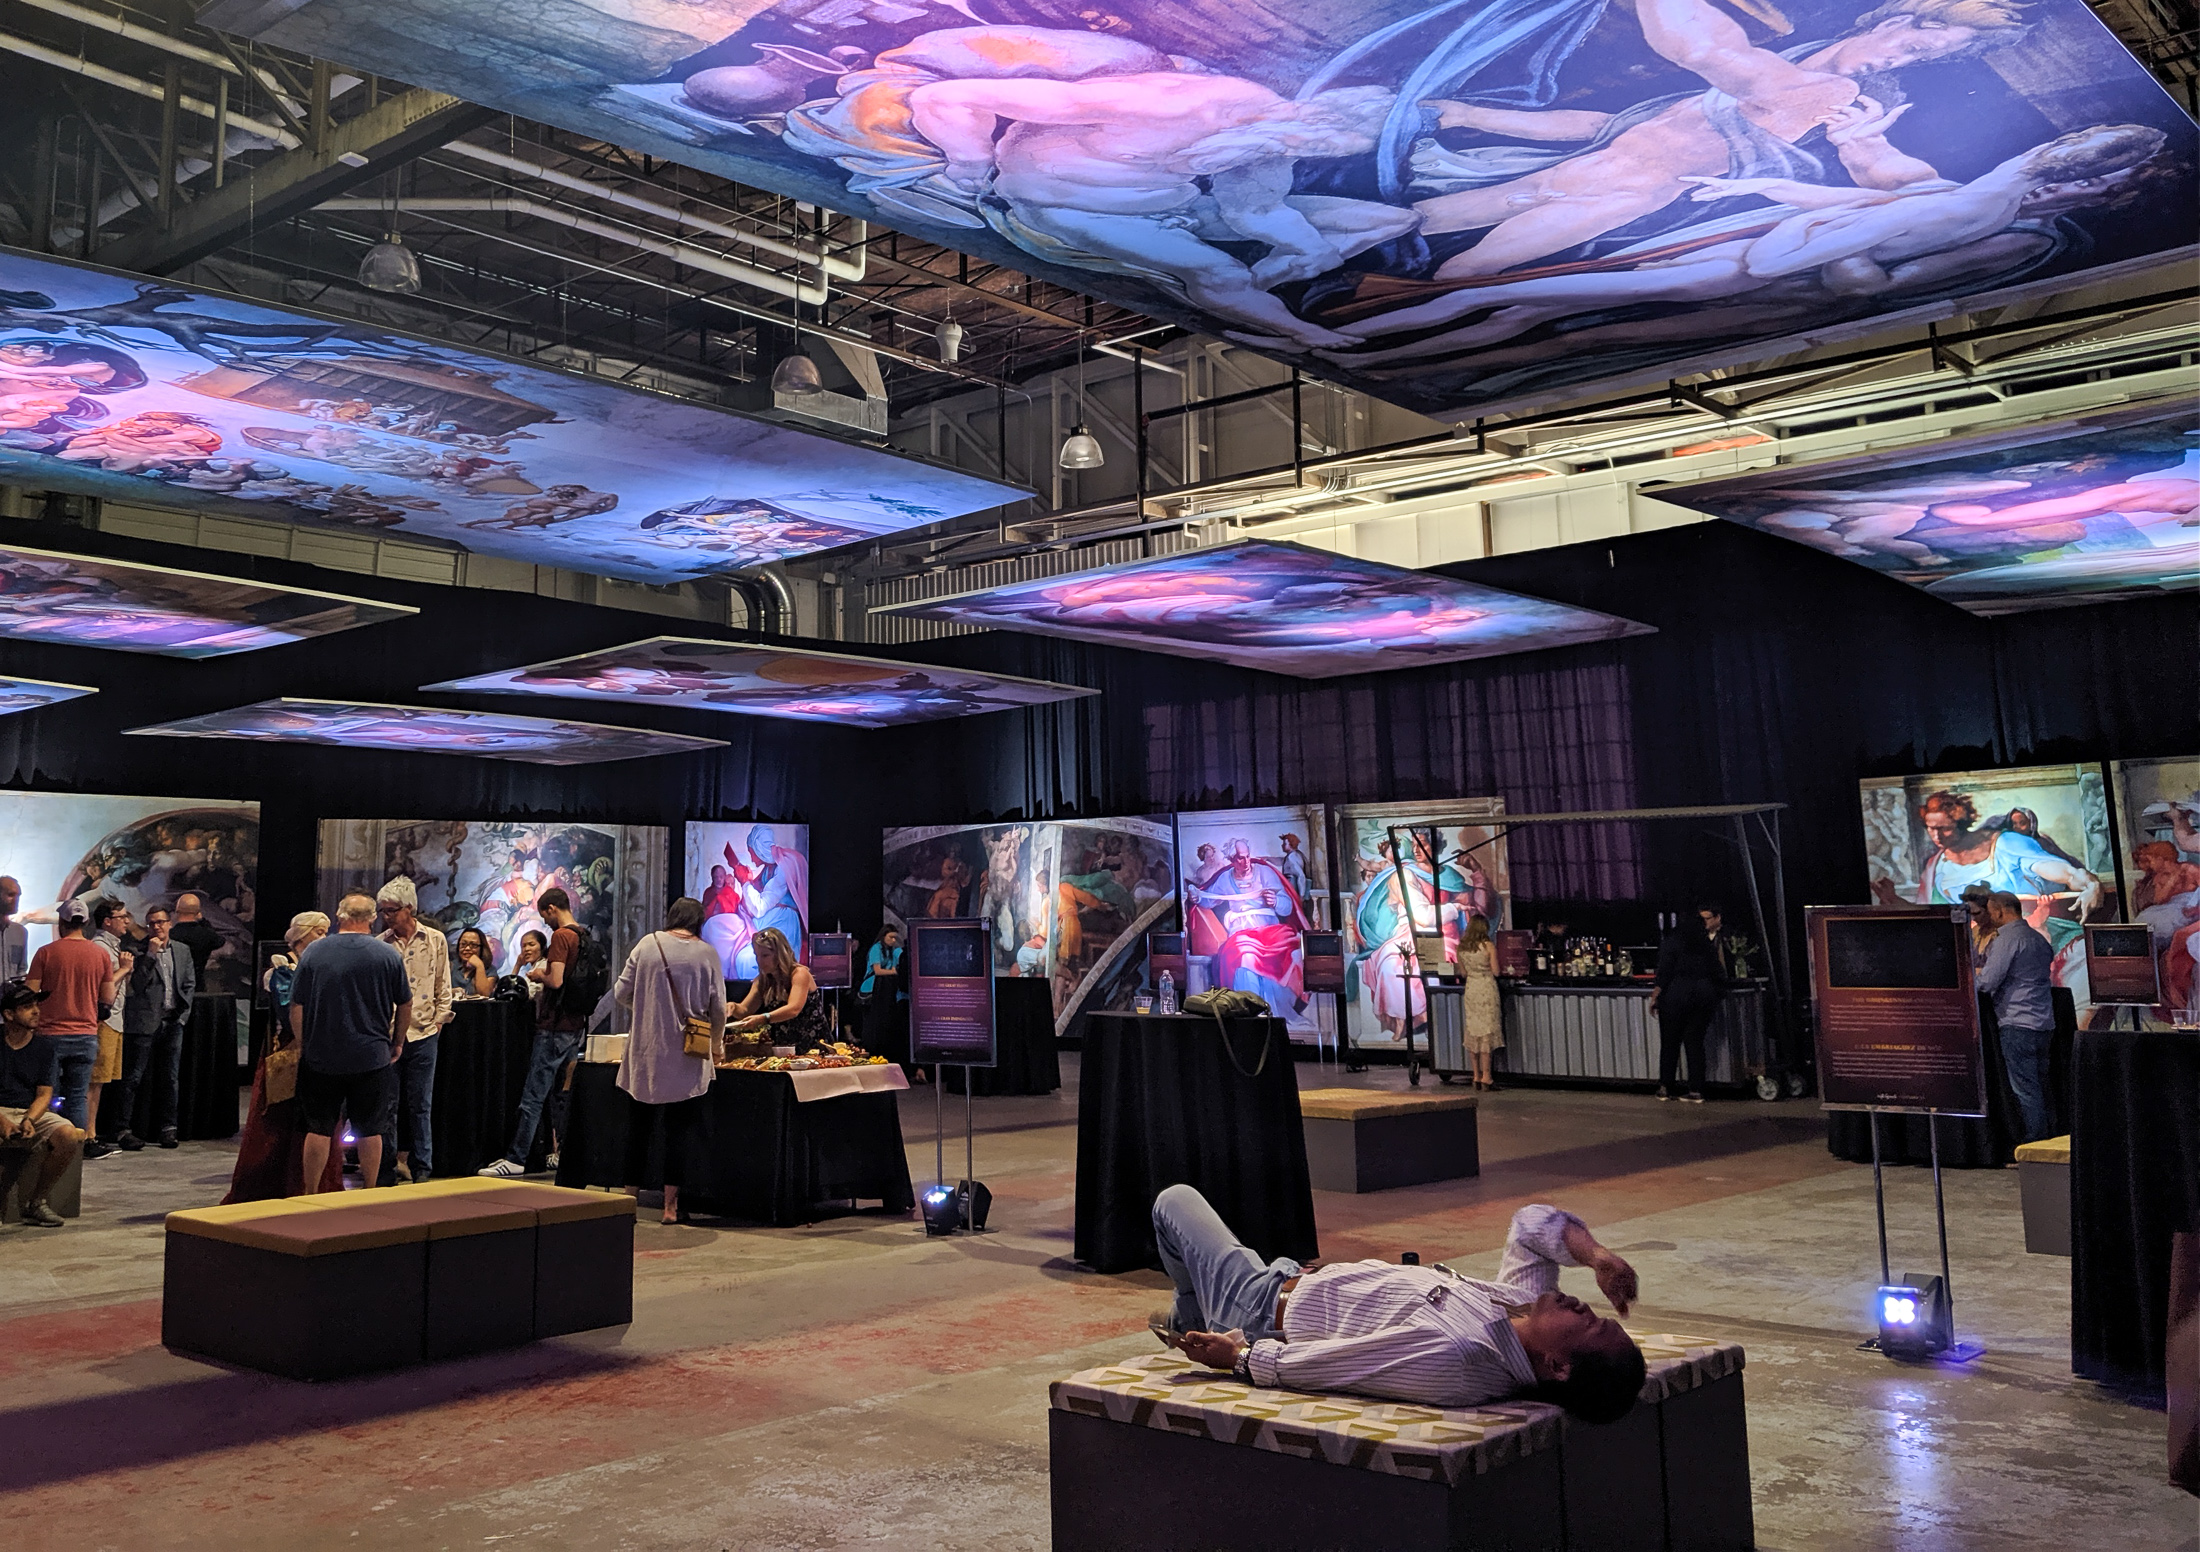 A First Look at the Sistine Chapel Exhibit at The Stanley Marketplace